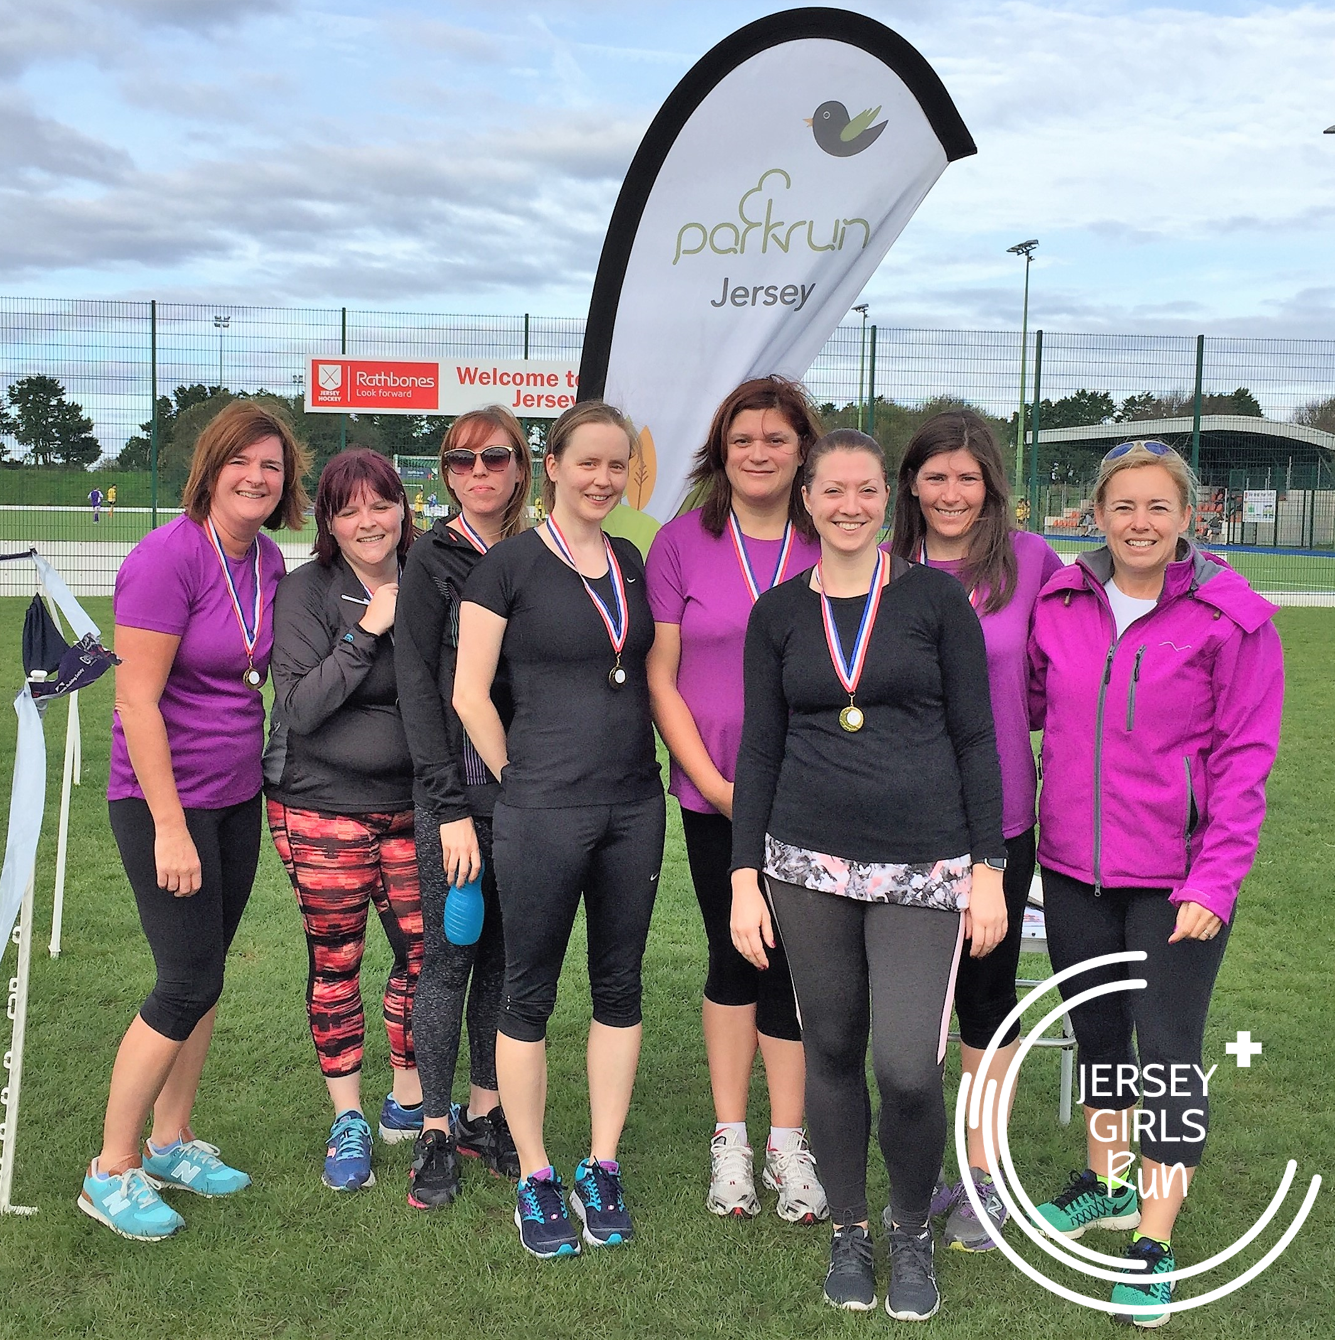 7 OCTOBER 2017 - Team Triumph head to parkrun - CONGRATULATIONS to team Team Triumph who completed their nine week C25K program with JERSEY GIRLS and headed to Jersey's parkrun to run their 5k.One of our team members was off island for their graduation run so instead of missing out, they found a parkrun at Brighton & Hove and did their 5k there at the same time as the team in Jersey.  Fantastic dedication.